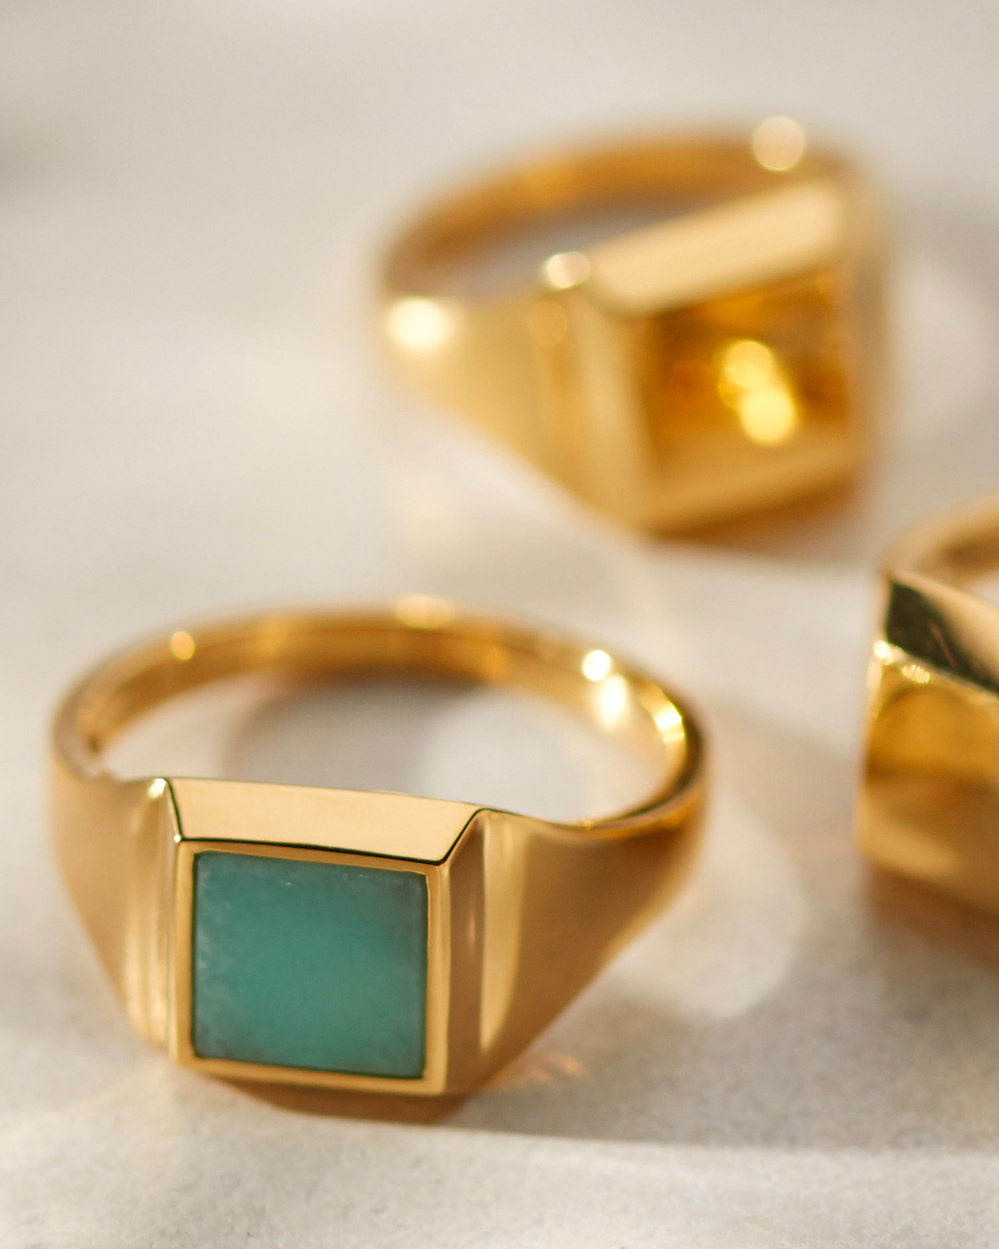 Three gold Monica Vinader Signet Rings, one with Amazonite embedded.